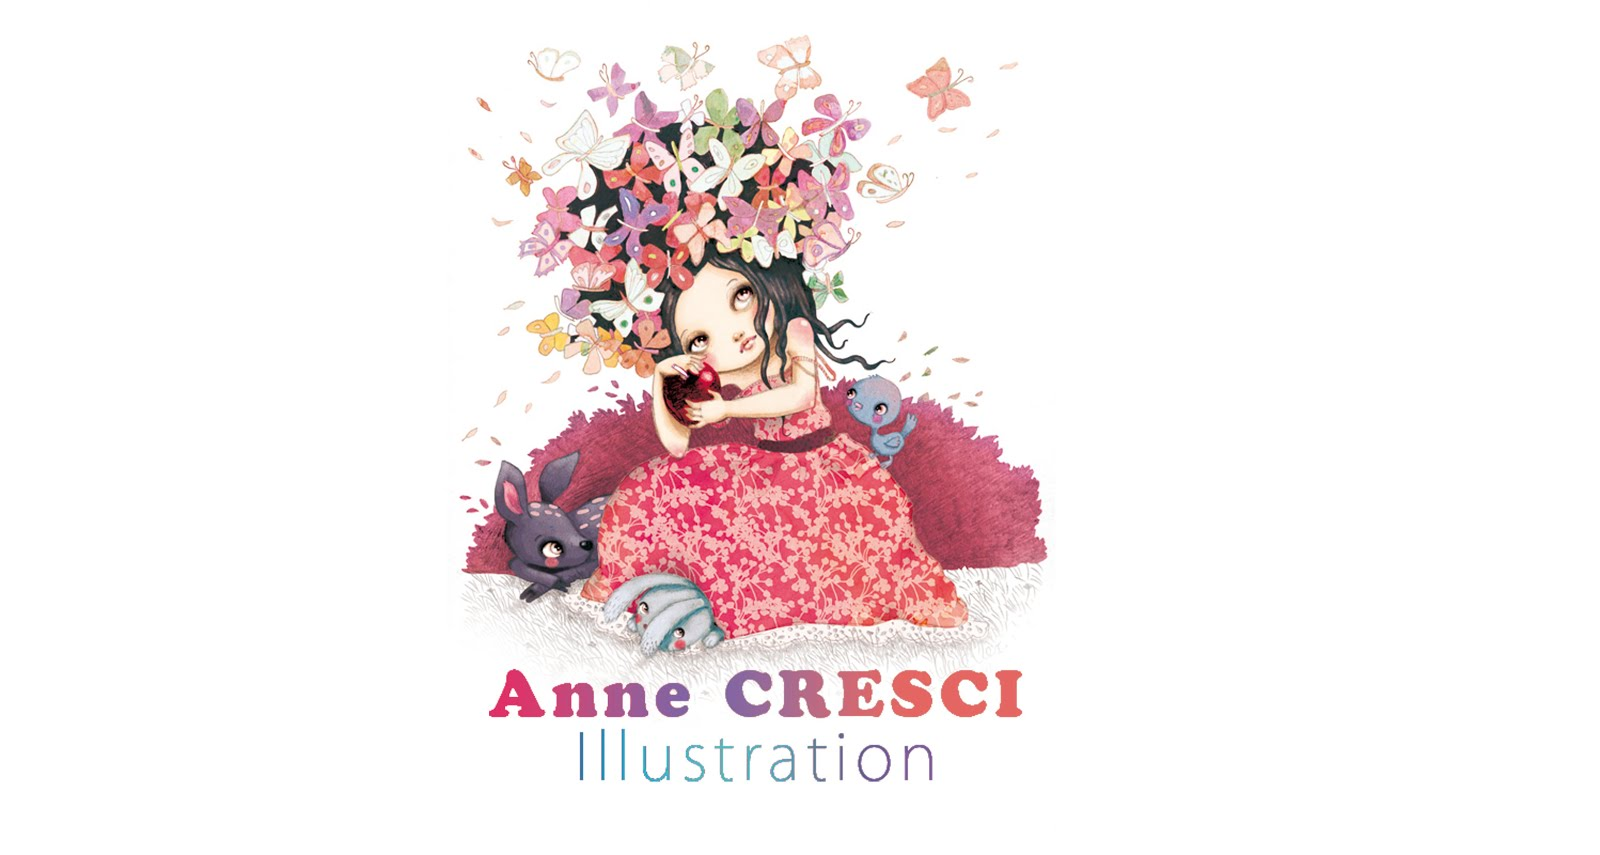 Anne cresci Illustration * freelance illustratrice Lyon